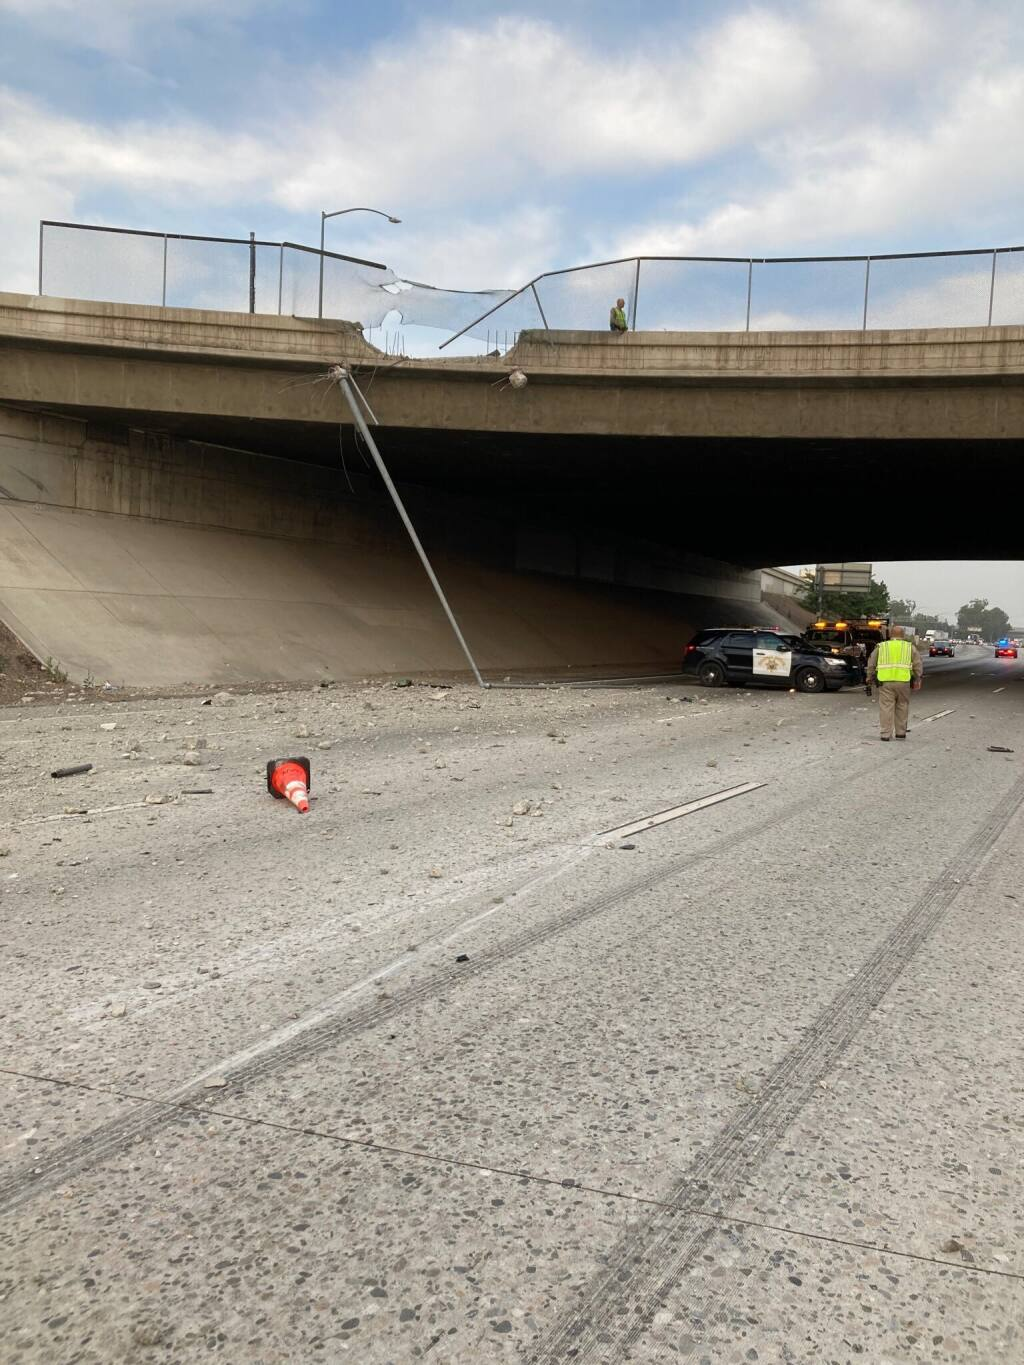 This photo provided by the California Highway Patrol Rancho Cucamonga shows a damaged concrete barrier on a Southern California overpass where a pickup truck crashed through onto the road below on Tuesday, June 29, 2021 in Fontana, Calif. The pickup truck driver was killed when he crashed through the fencing and concrete barrier of the overpass and flew over the edge and smashed onto the freeway below early Tuesday, authorities said. The man, whose name has not been released, was driving his 2005 Ford pickup around 4:10 a.m. at a high speed on Interstate 10 in Fontana, the California Highway Patrol said in a news release. (CHP Rancho Cucamonga via AP)